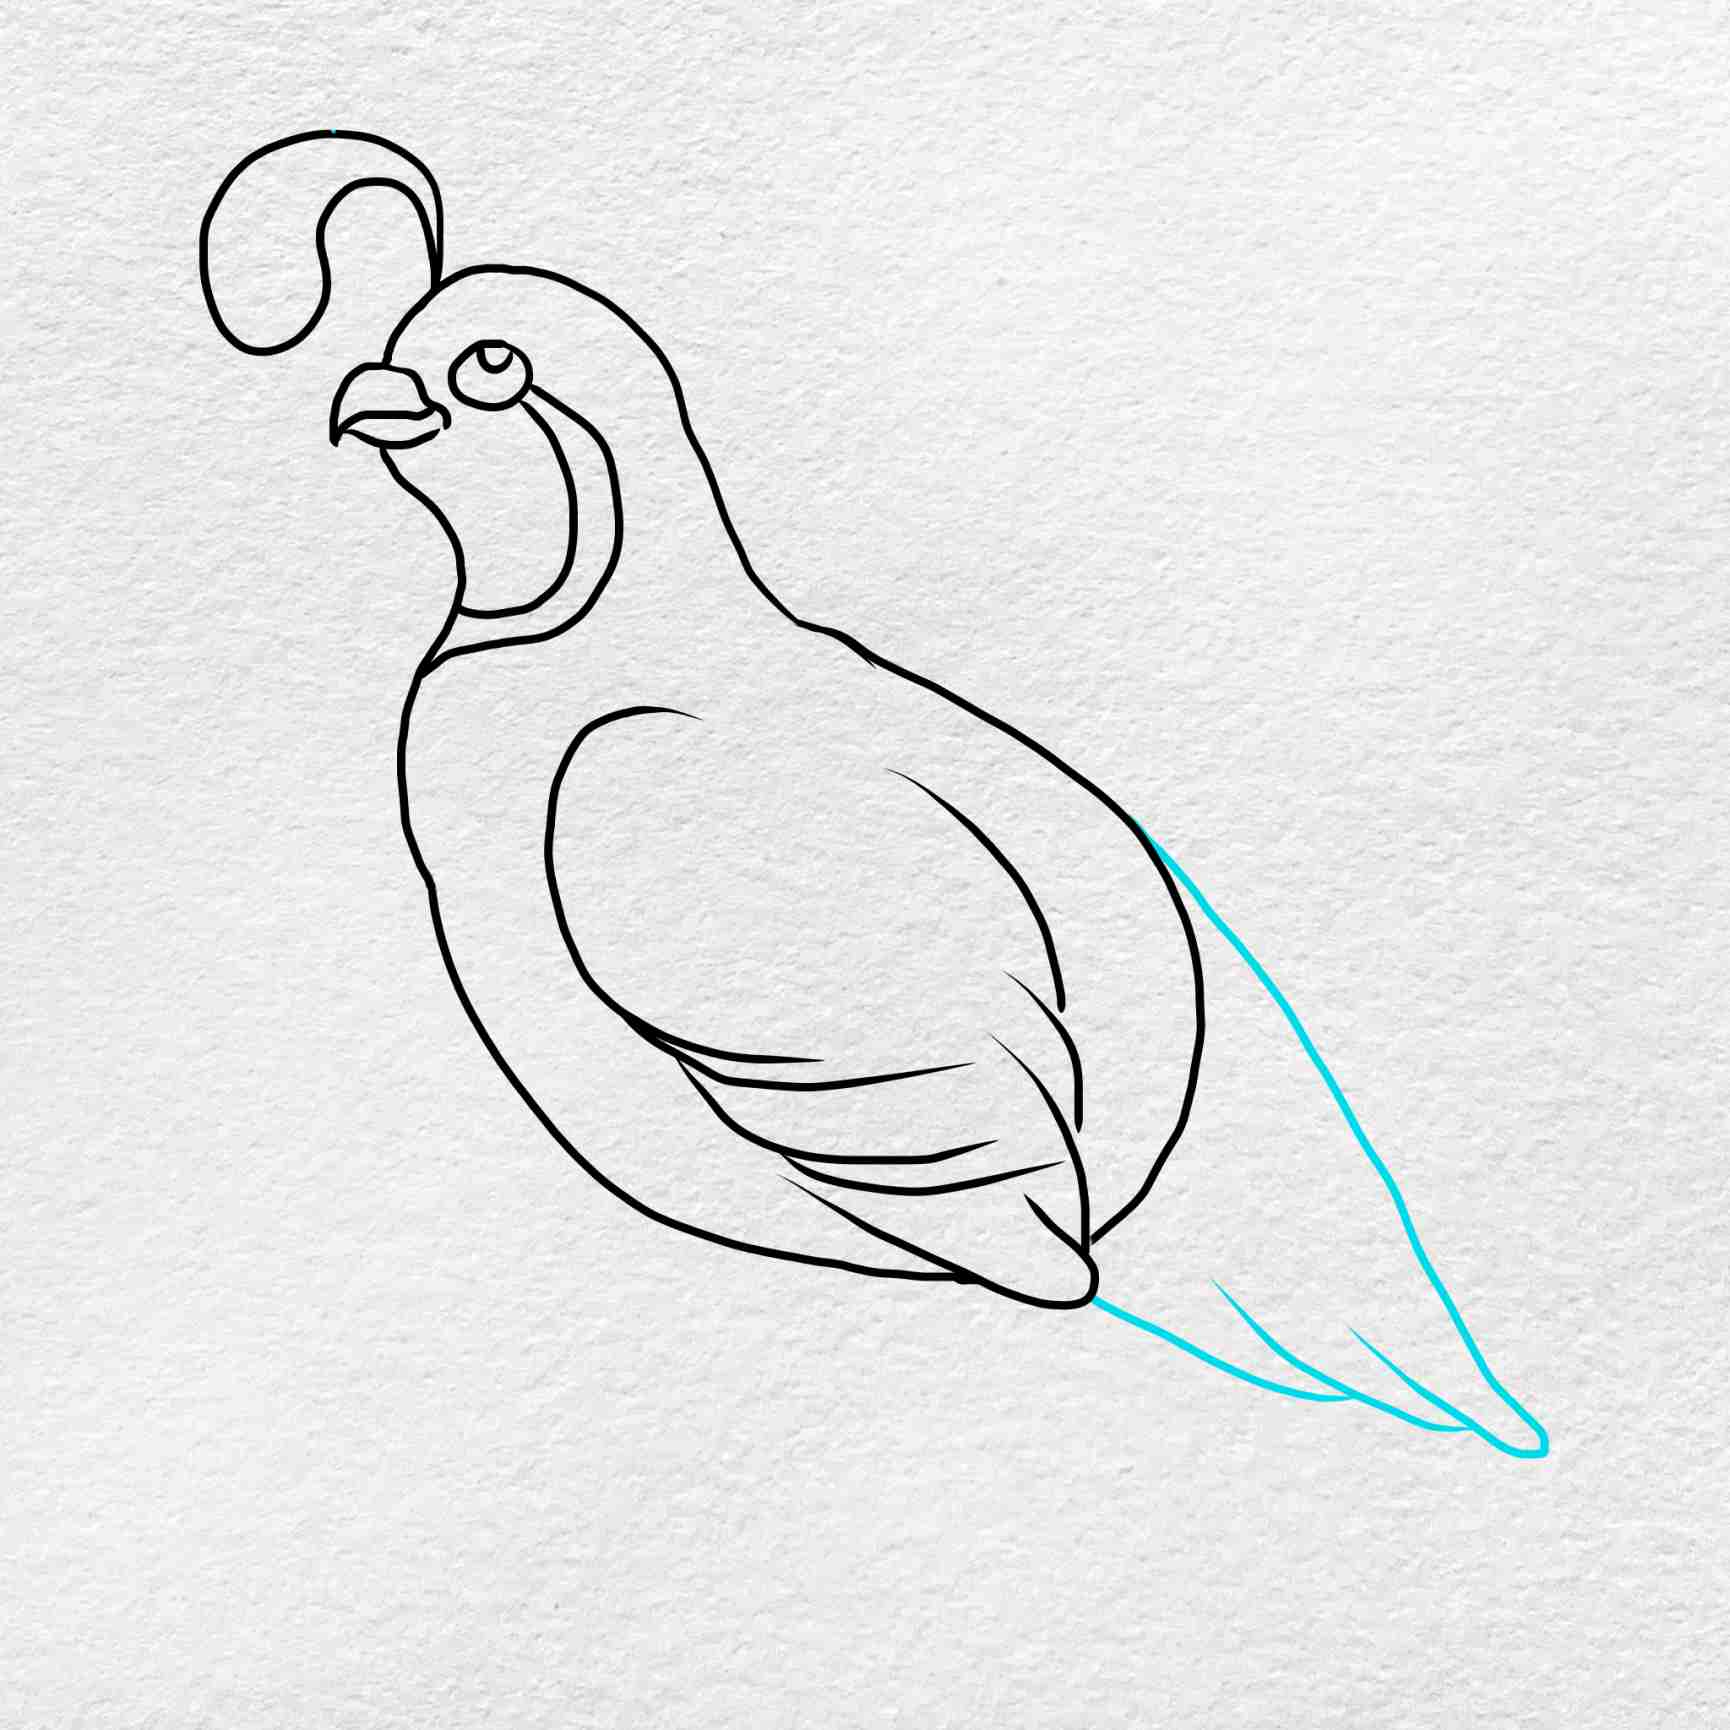 How To Draw A Quail: Step 4